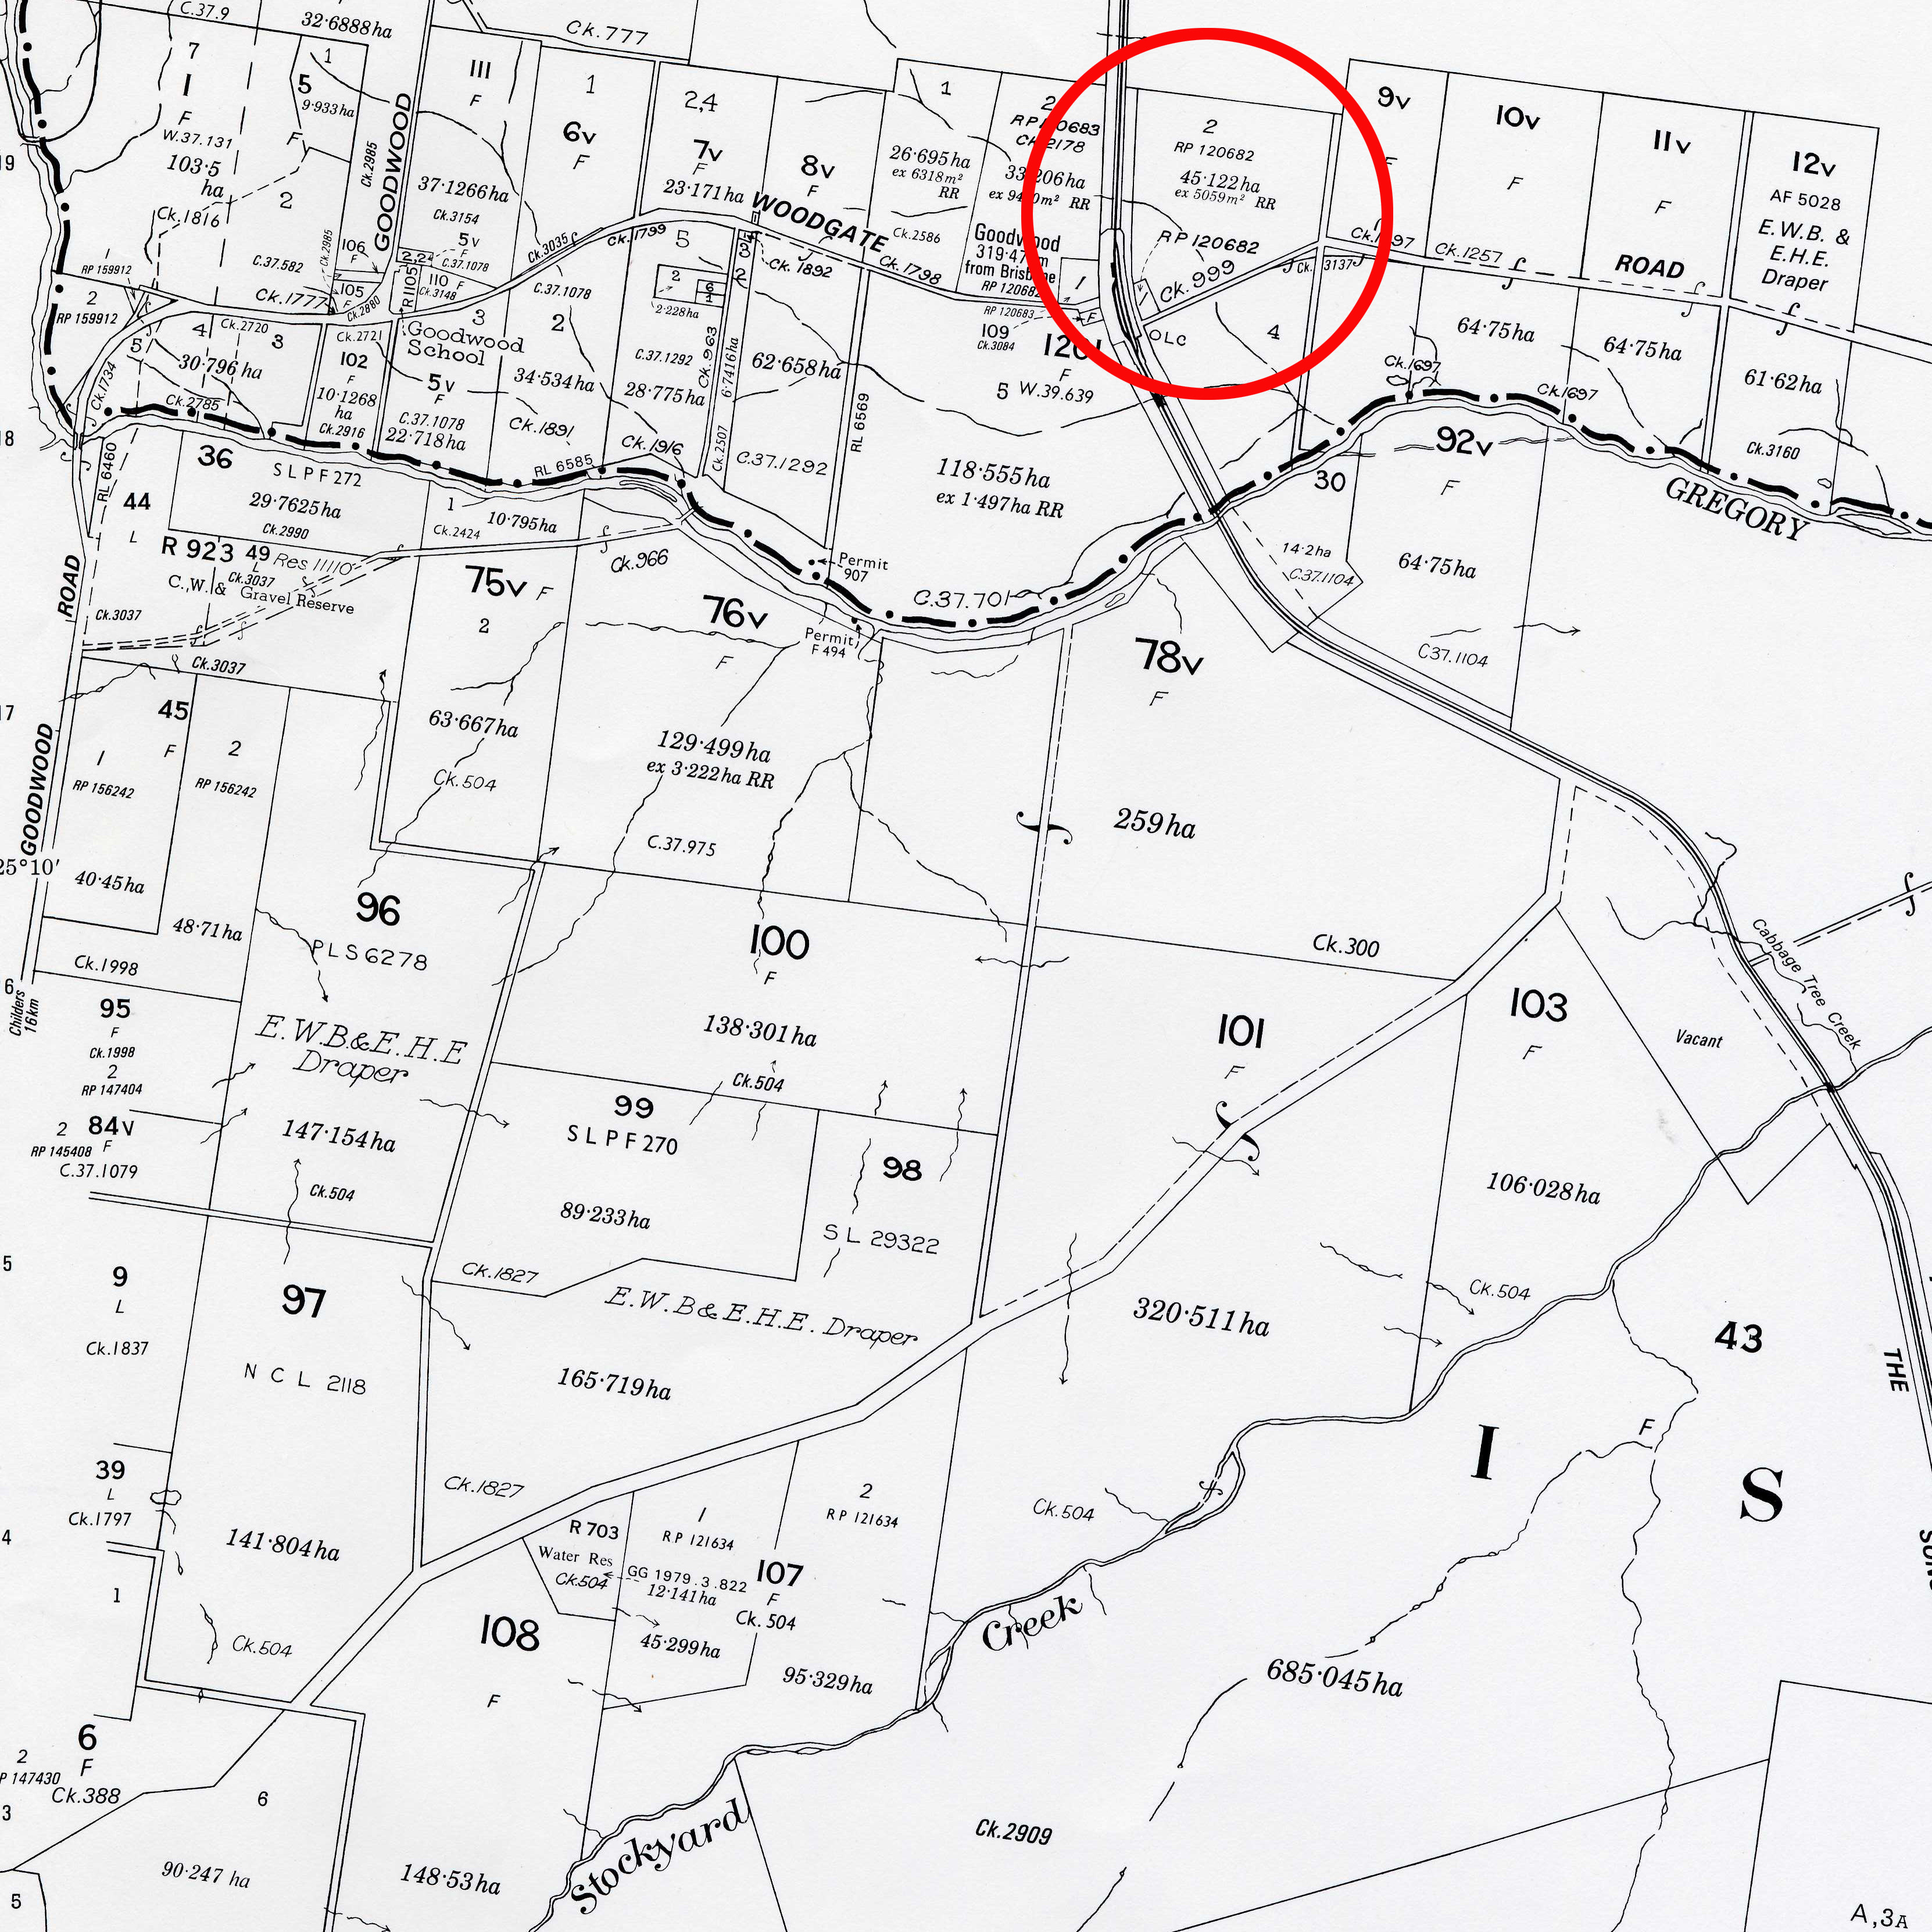 This image shows an example of a cadastral map and the area circled in red is the intended survey plan.